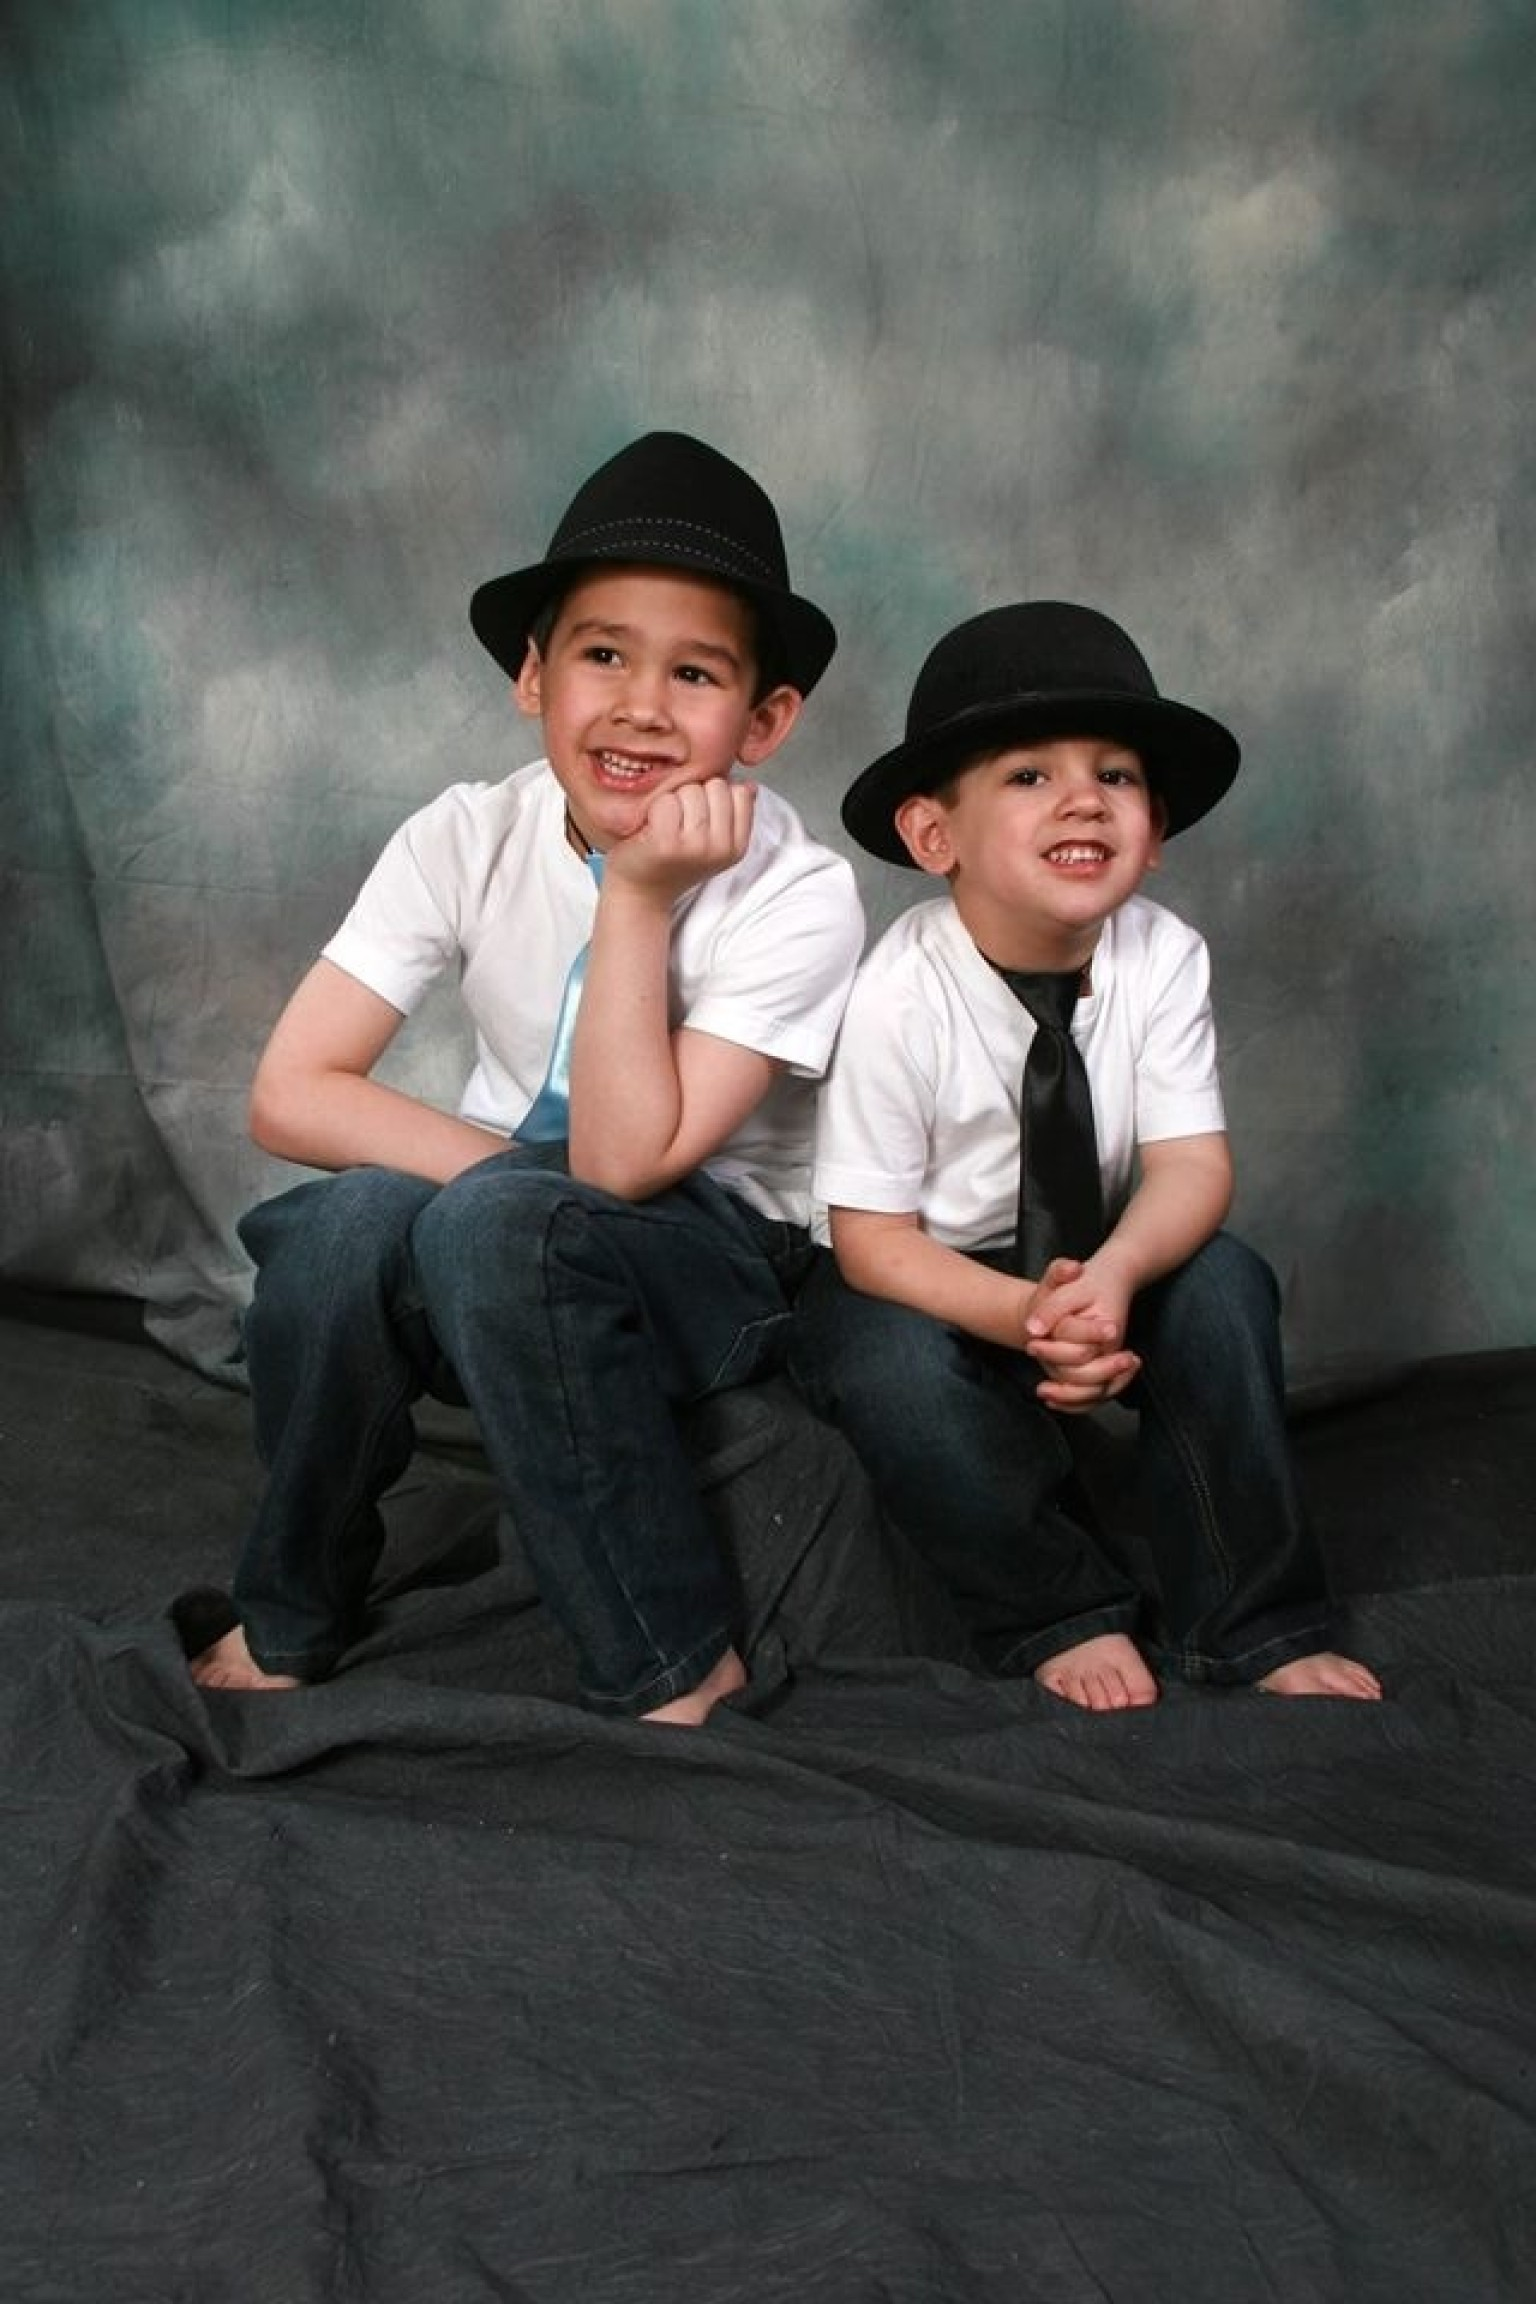 Man Officially Charged In Python Deaths of Barthe Brothers